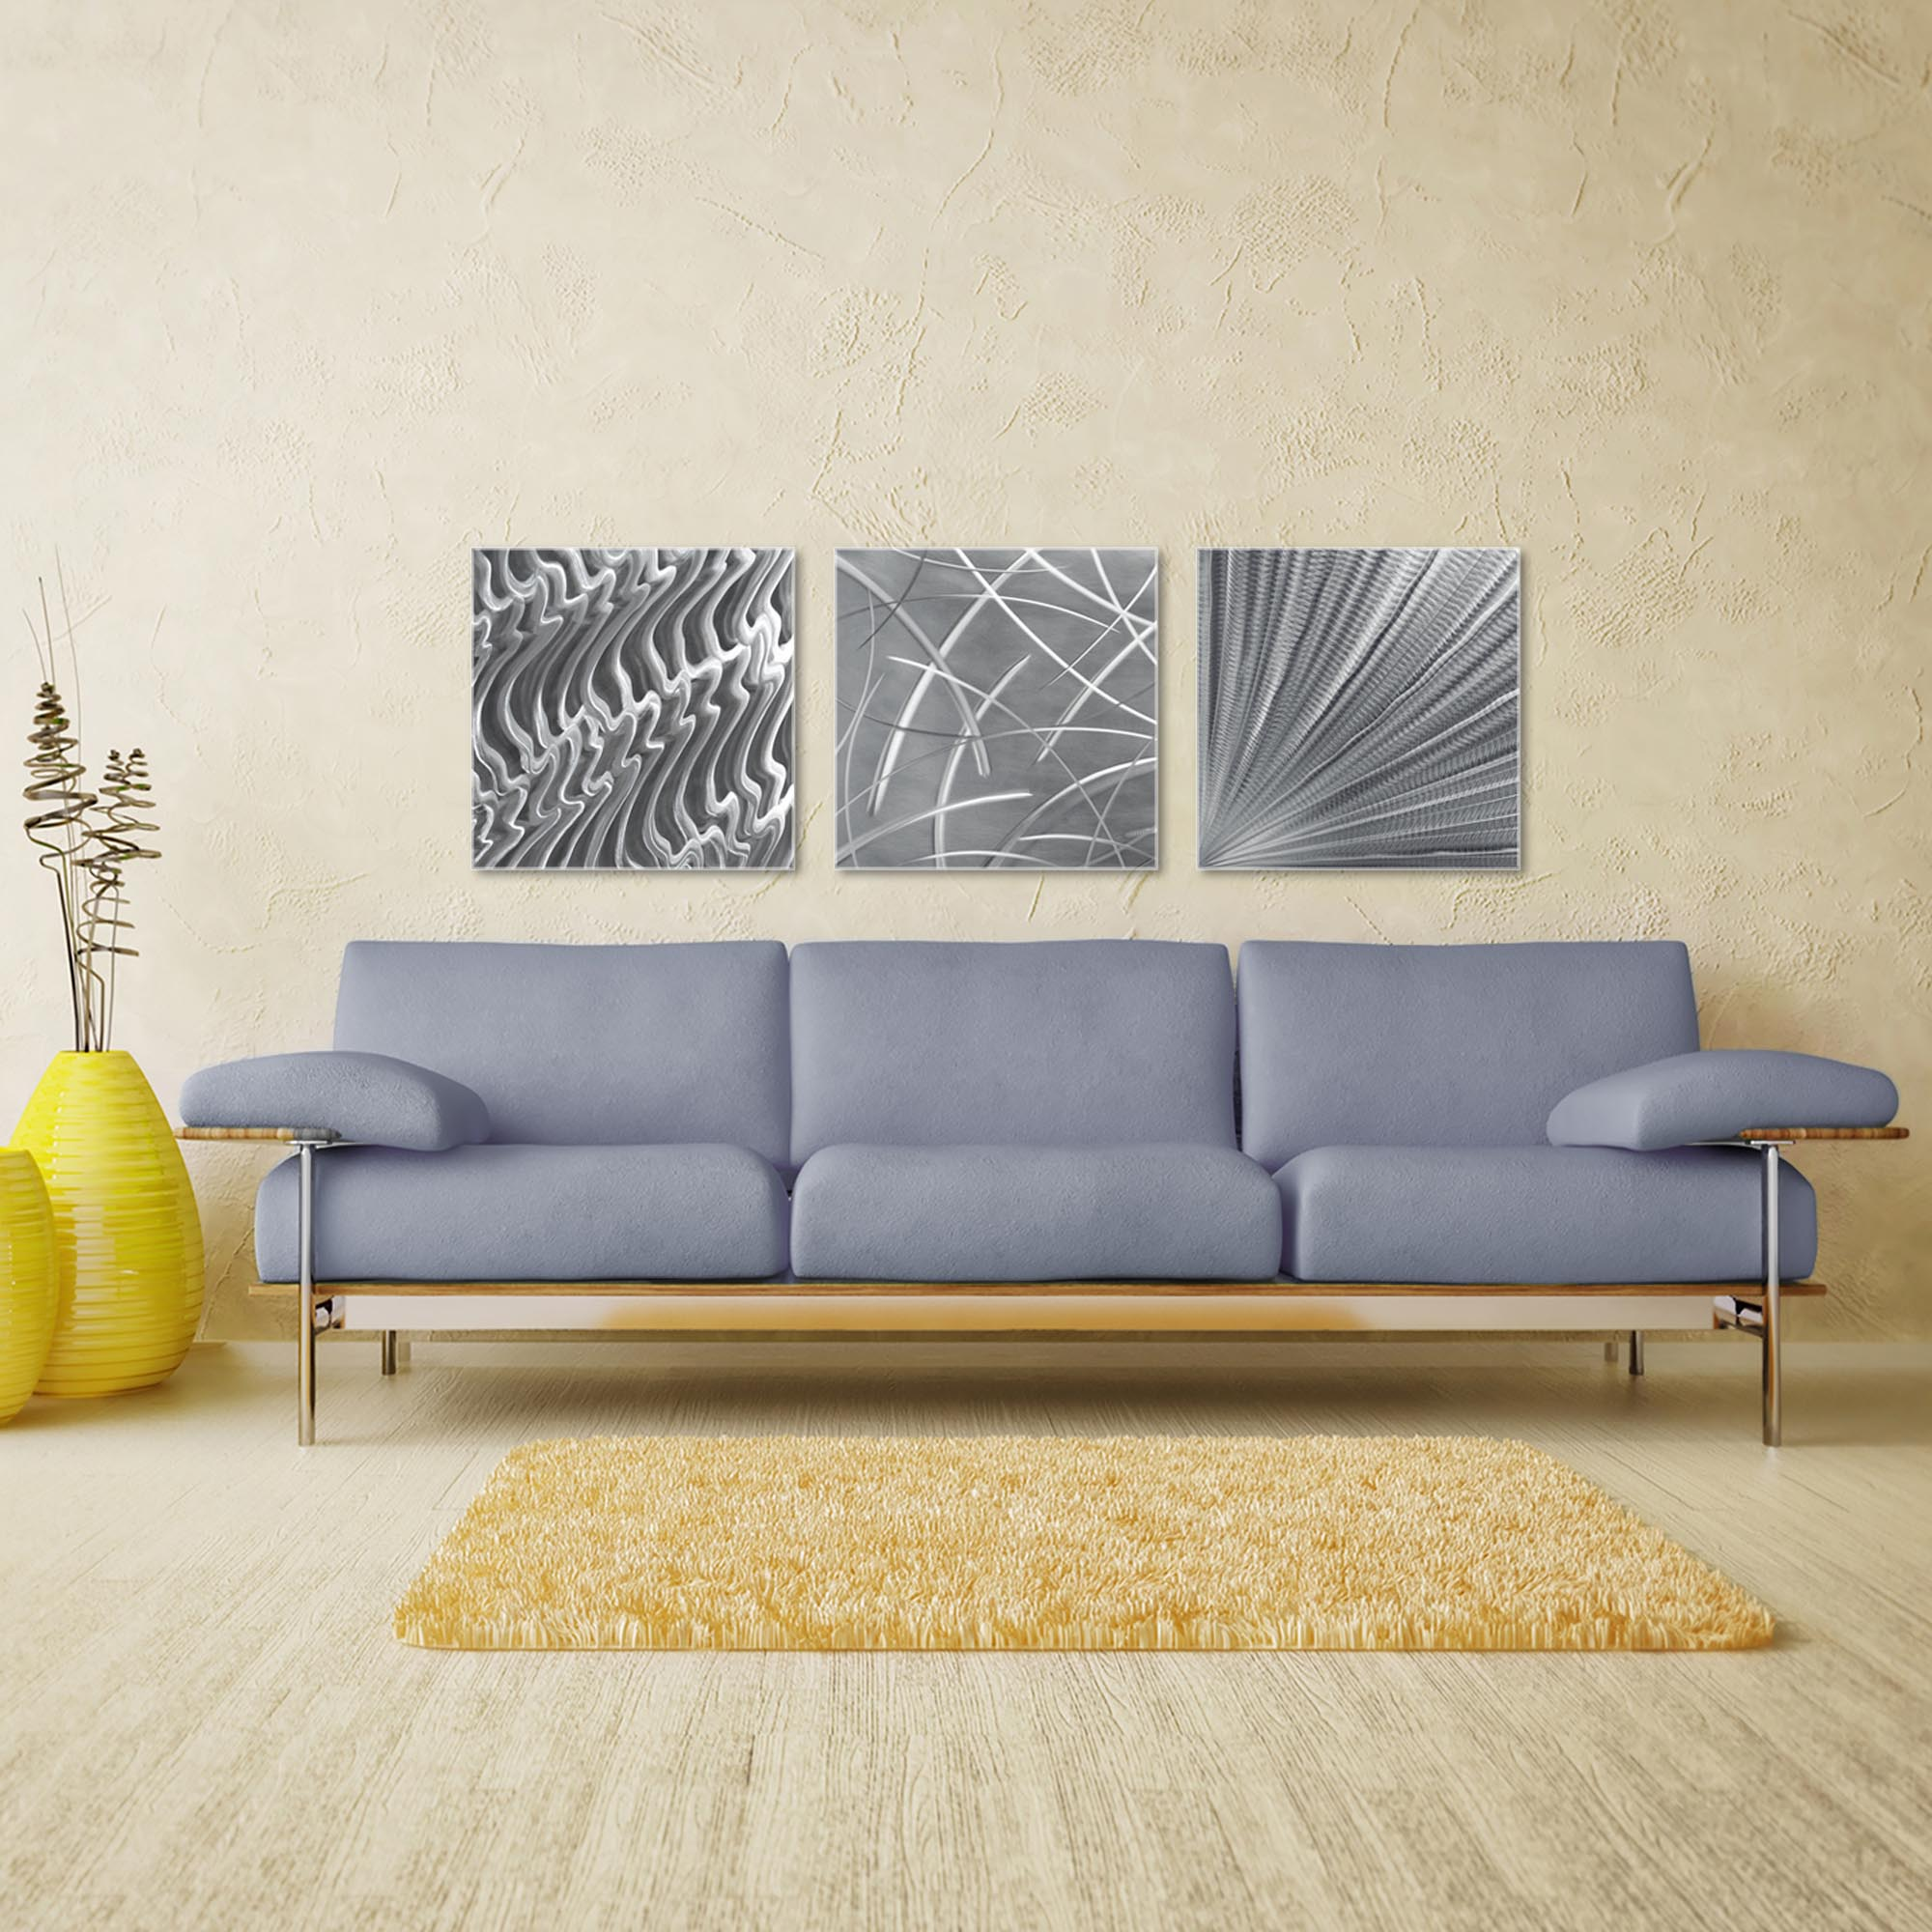 Countless v2 Triptych Large 70x22in. Metal or Acrylic Contemporary Decor - Image 3